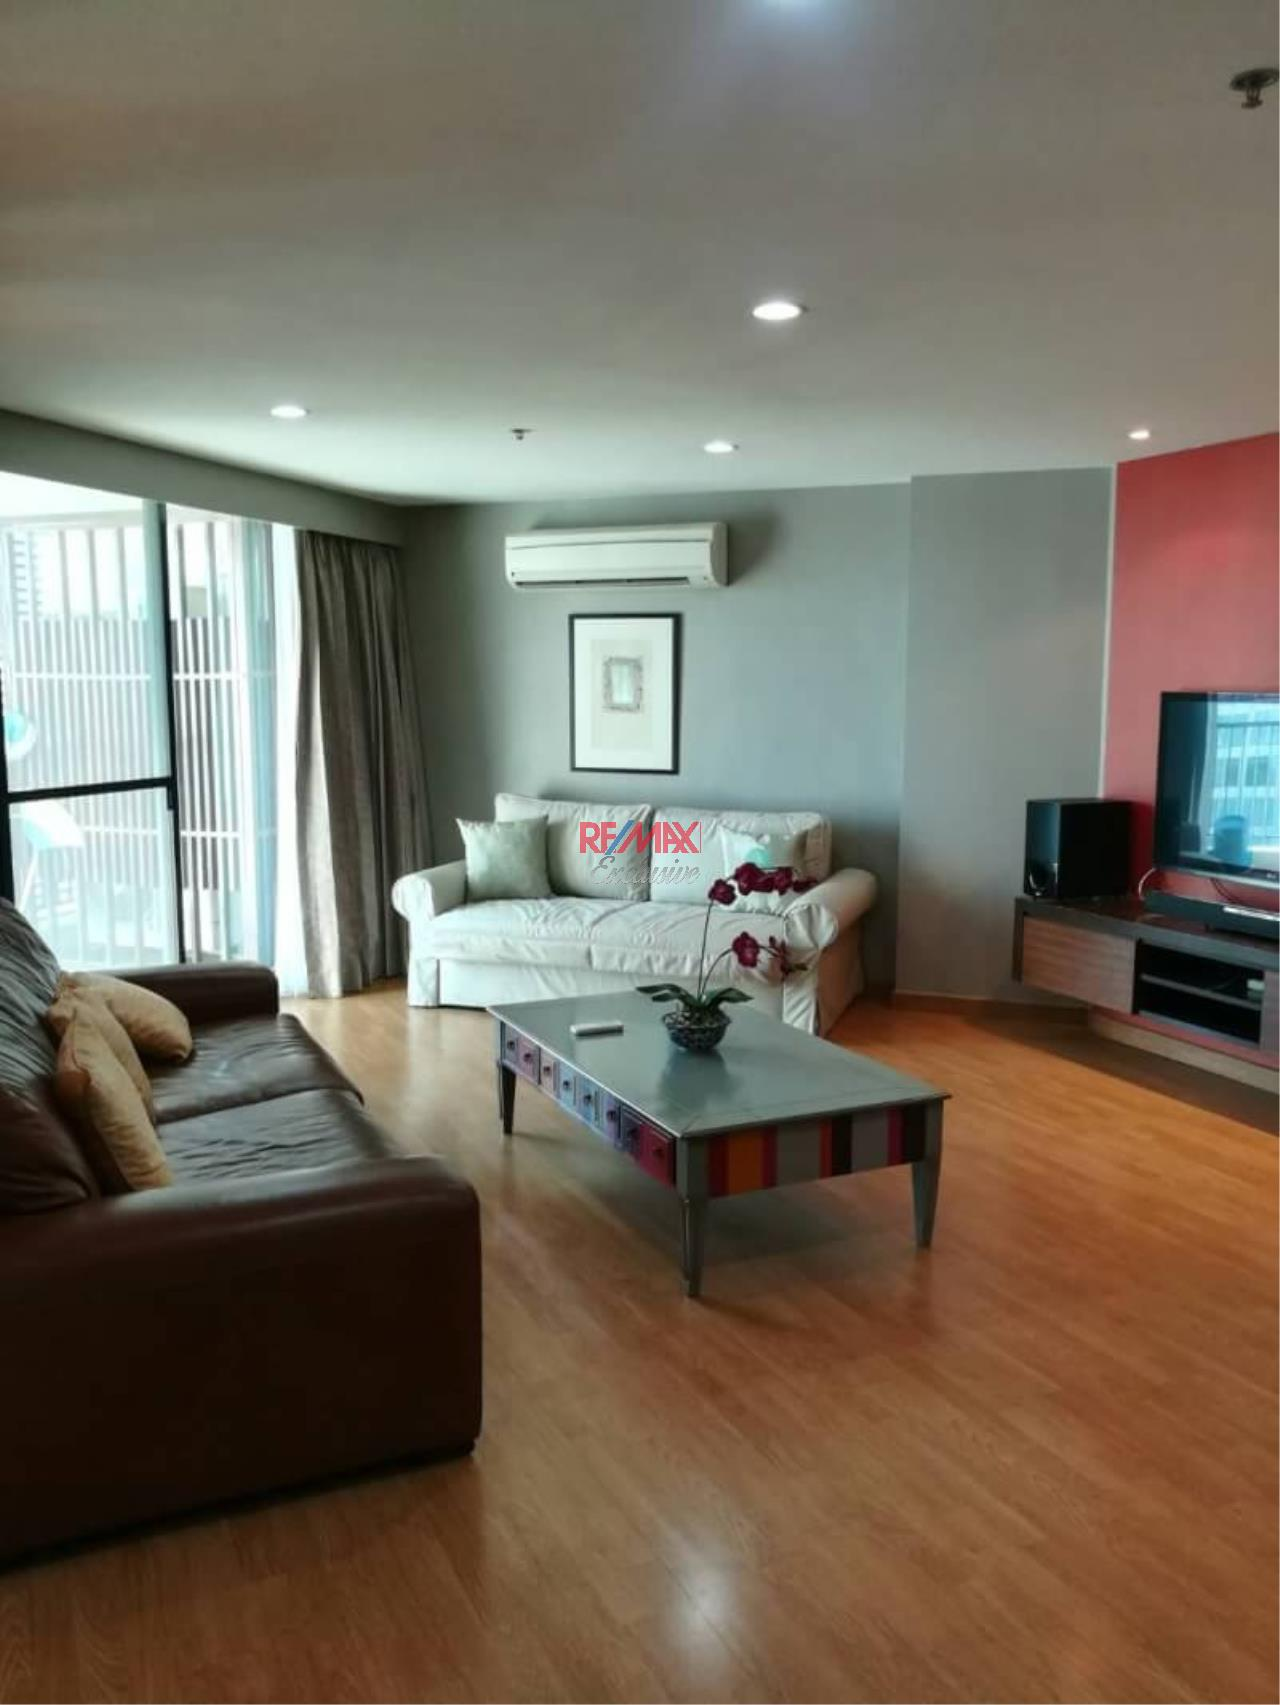 RE/MAX Exclusive Agency's 2 bedroom condo for rent at 59 Herritage 2